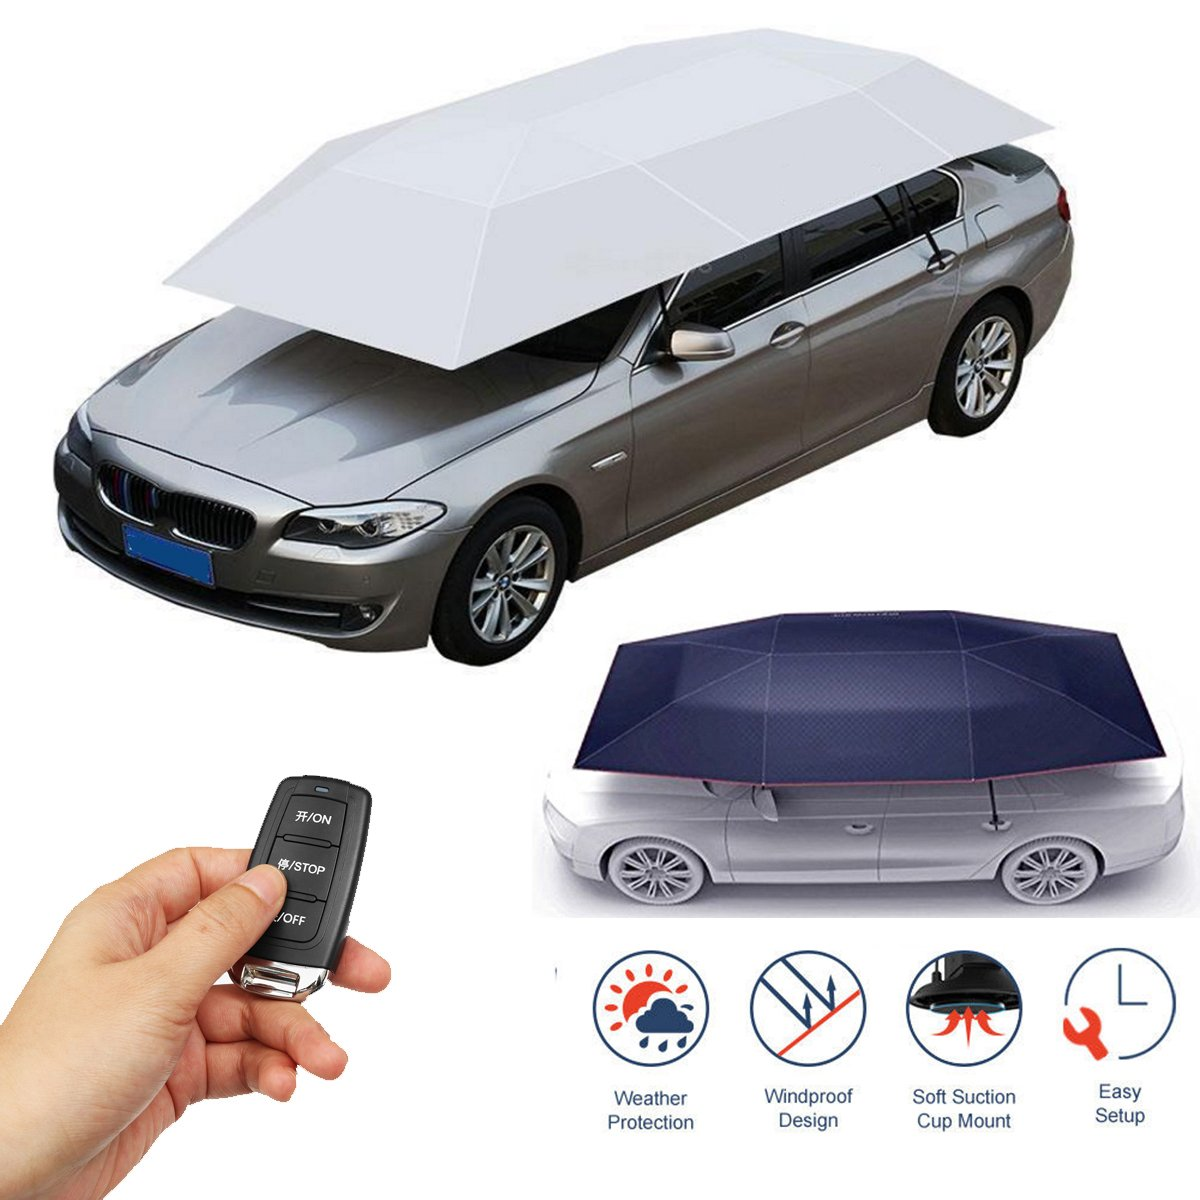 Portable Automatic Car Umbrella Cover